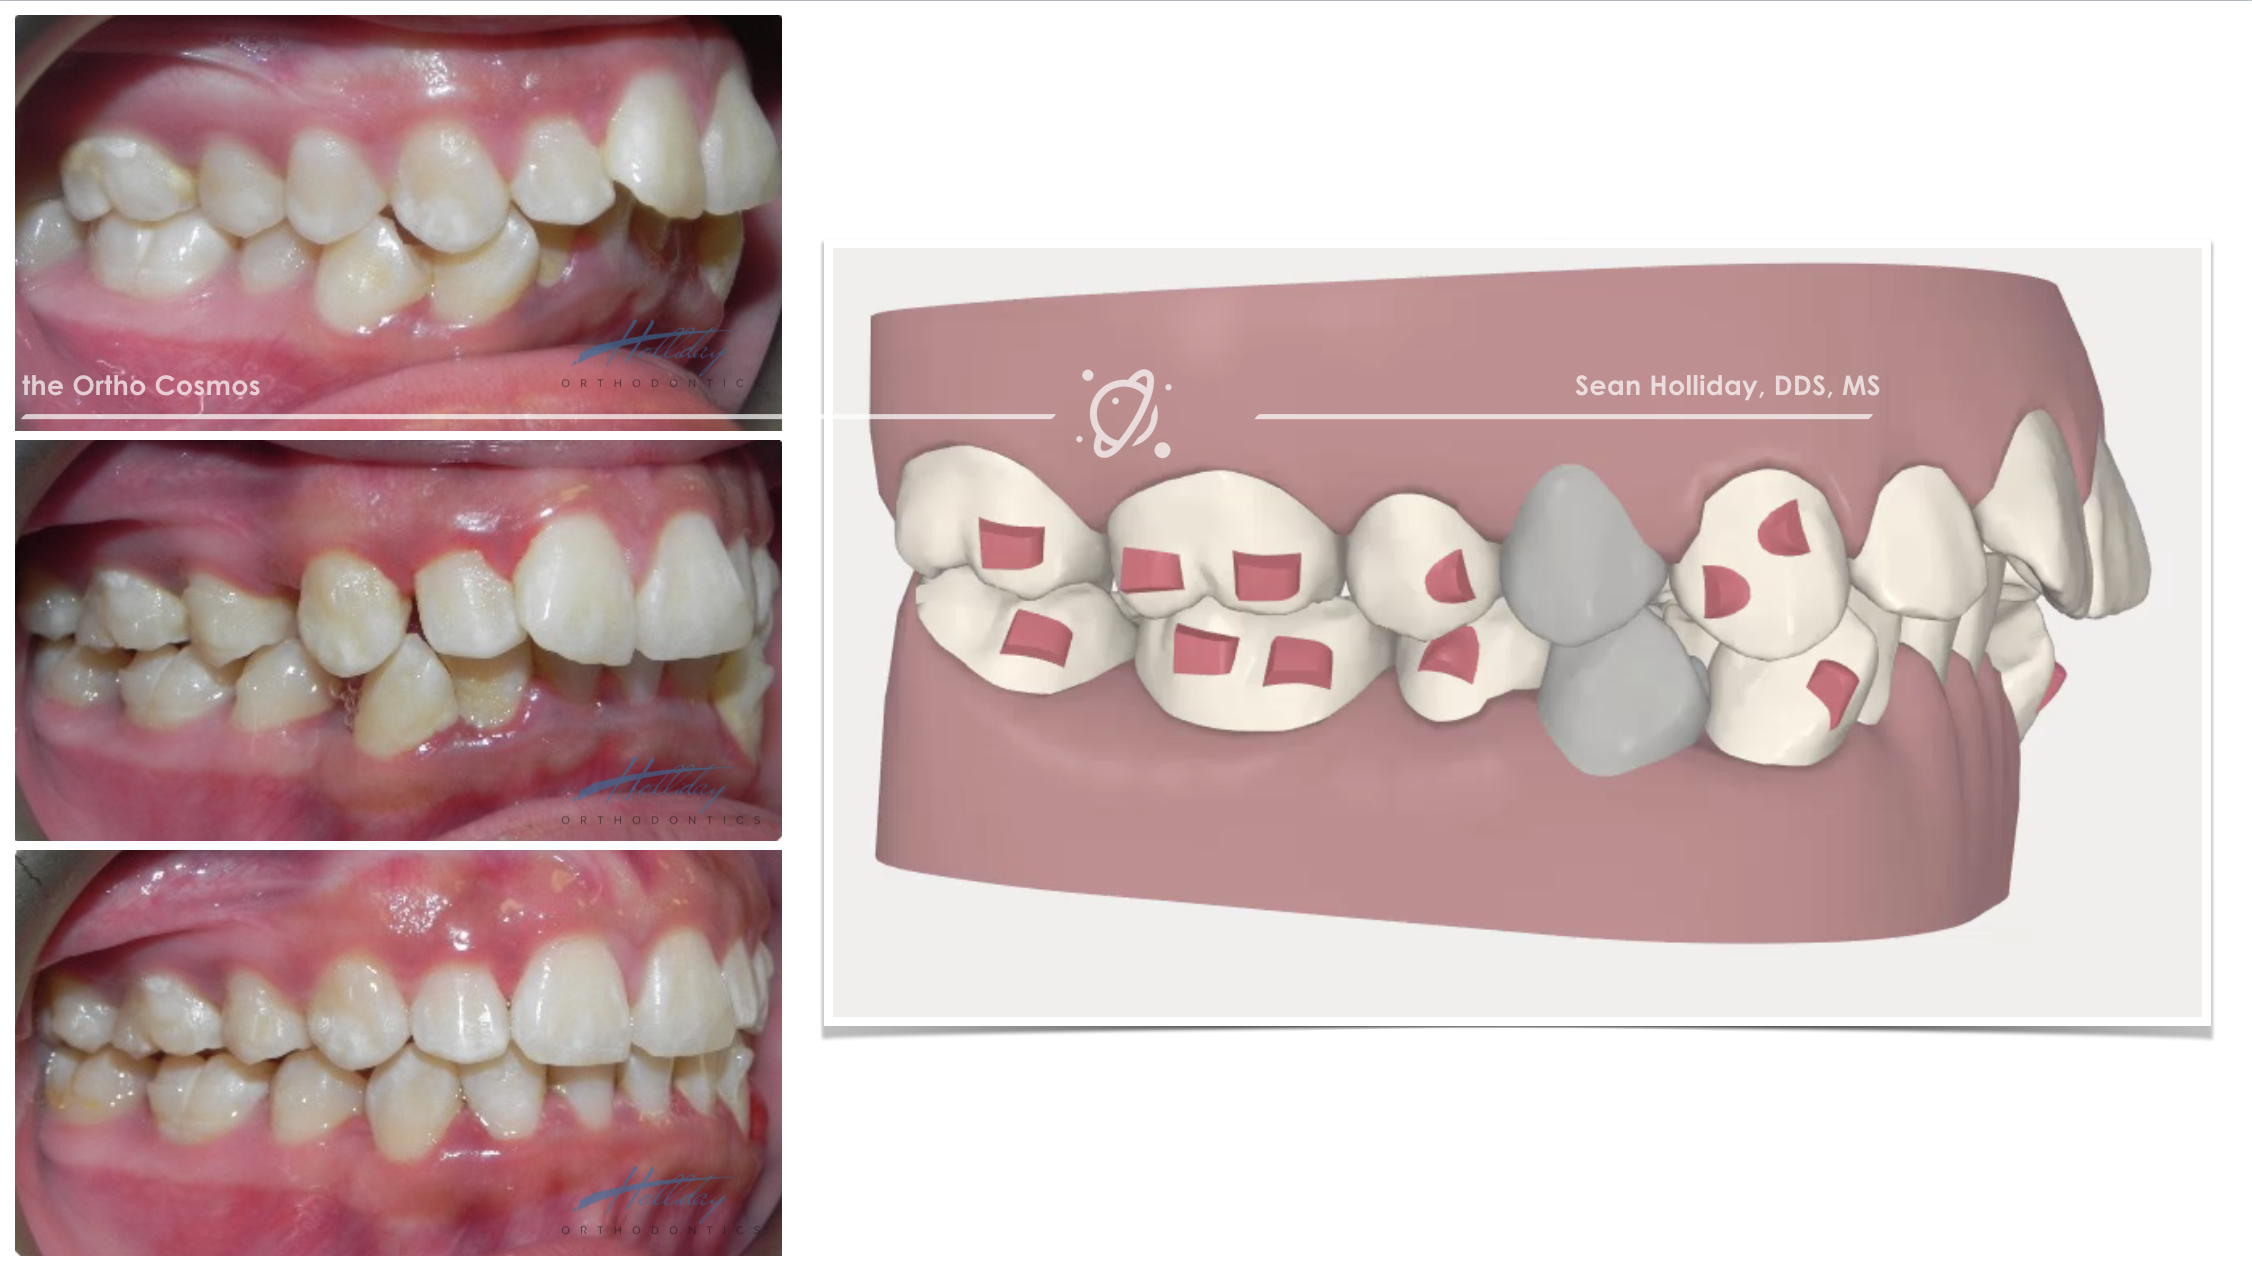 Extraction Treatment With Invisalign The Ortho Cosmos